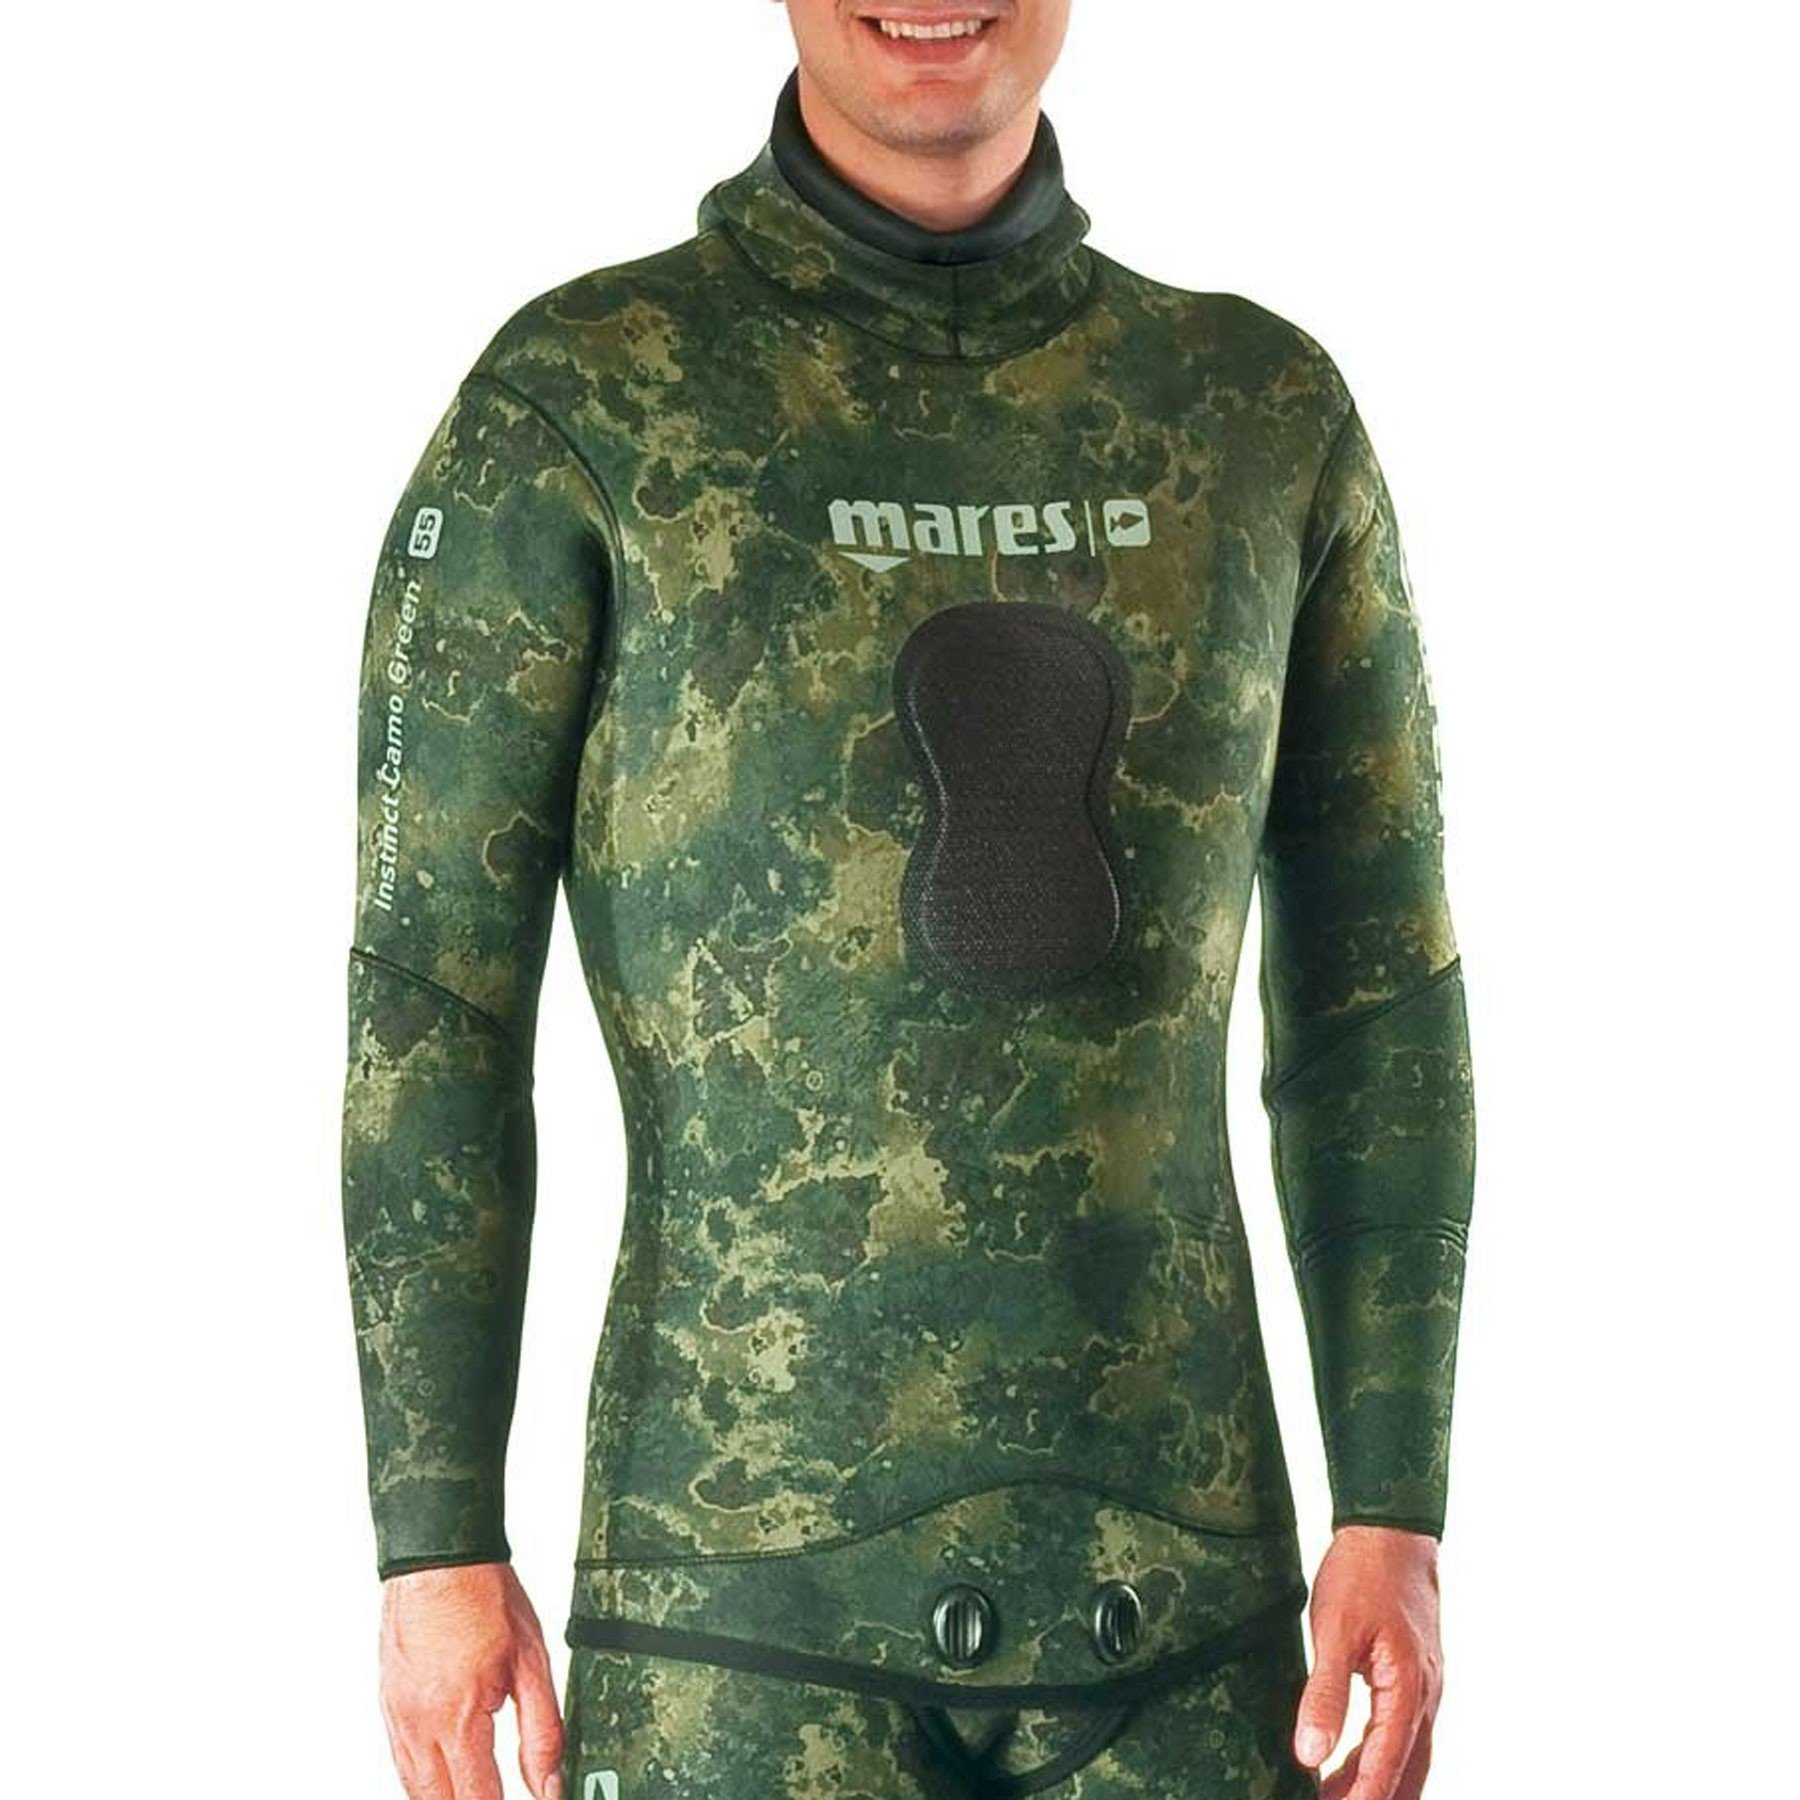 Mares Pure Instinct 5mm Jacket, Green Camo, S3 Medium